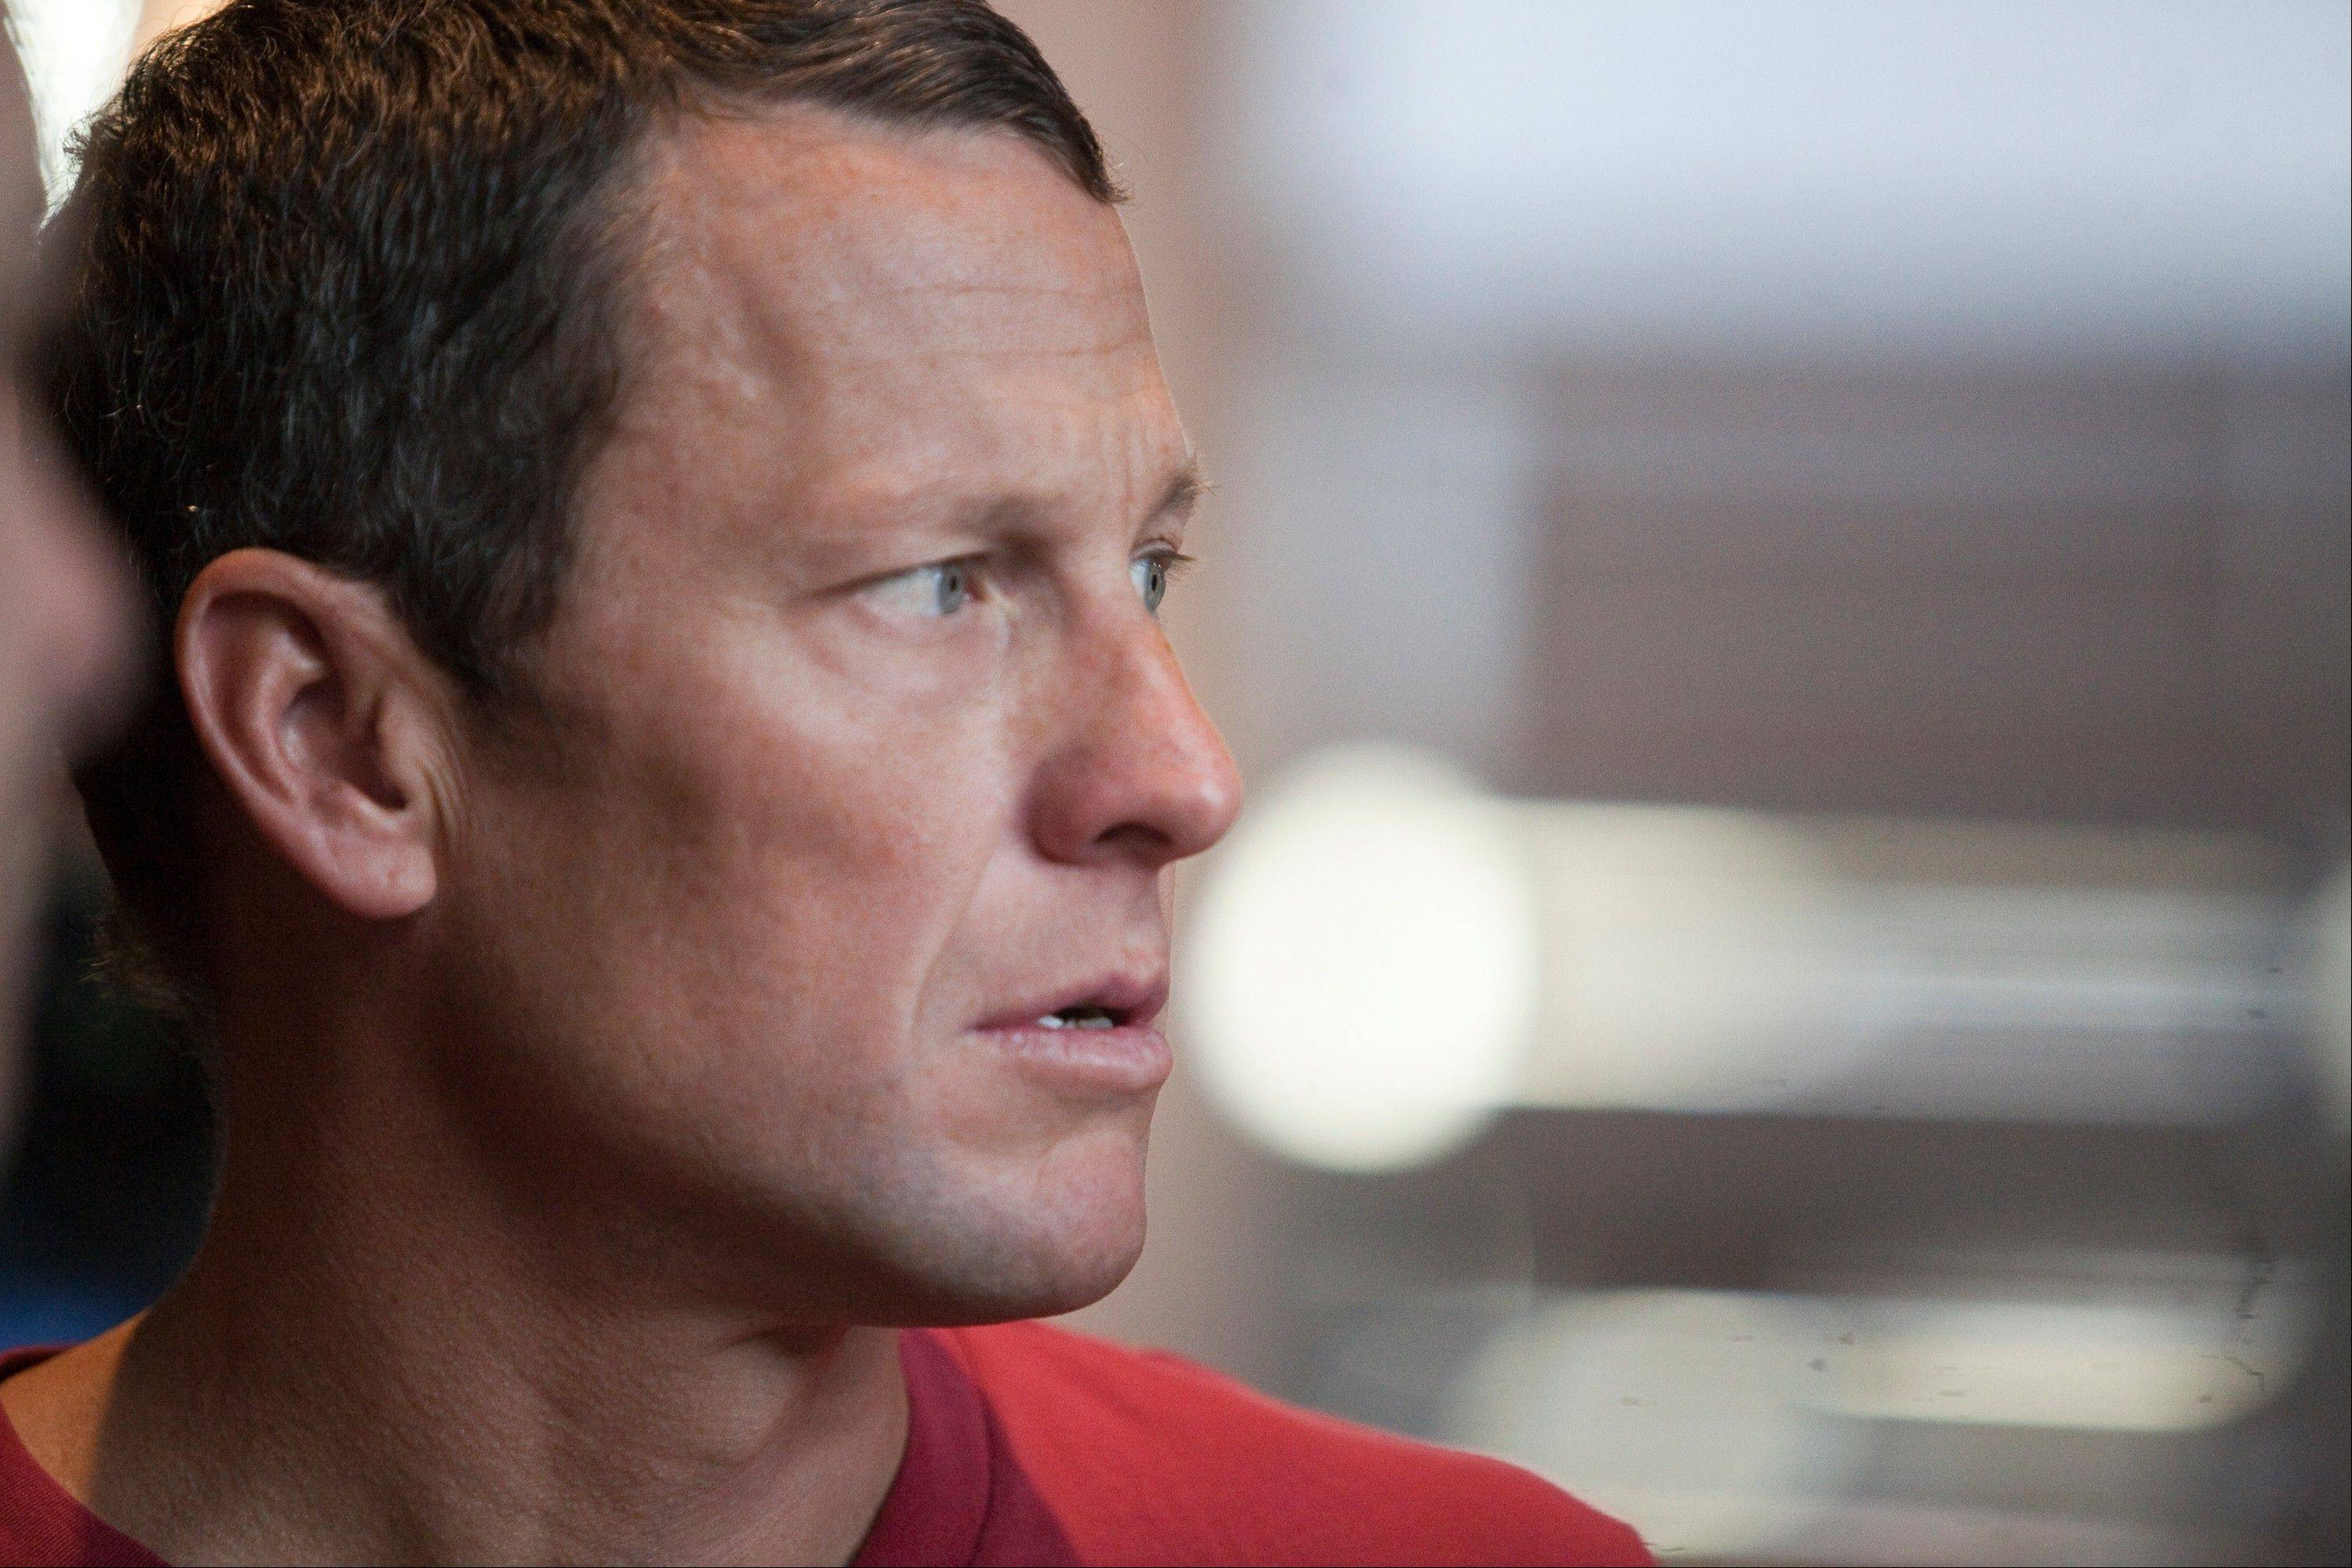 Lance Armstrong, who was stripped of his seven Tour de France titles and banned from racing in a doping scandal, may still find some redemption. Armstrong's only hope may come, not from an interview with Oprah Winfrey, but with total cooperation with the anti-doping and cycling authorities who say he was a serial cheat.